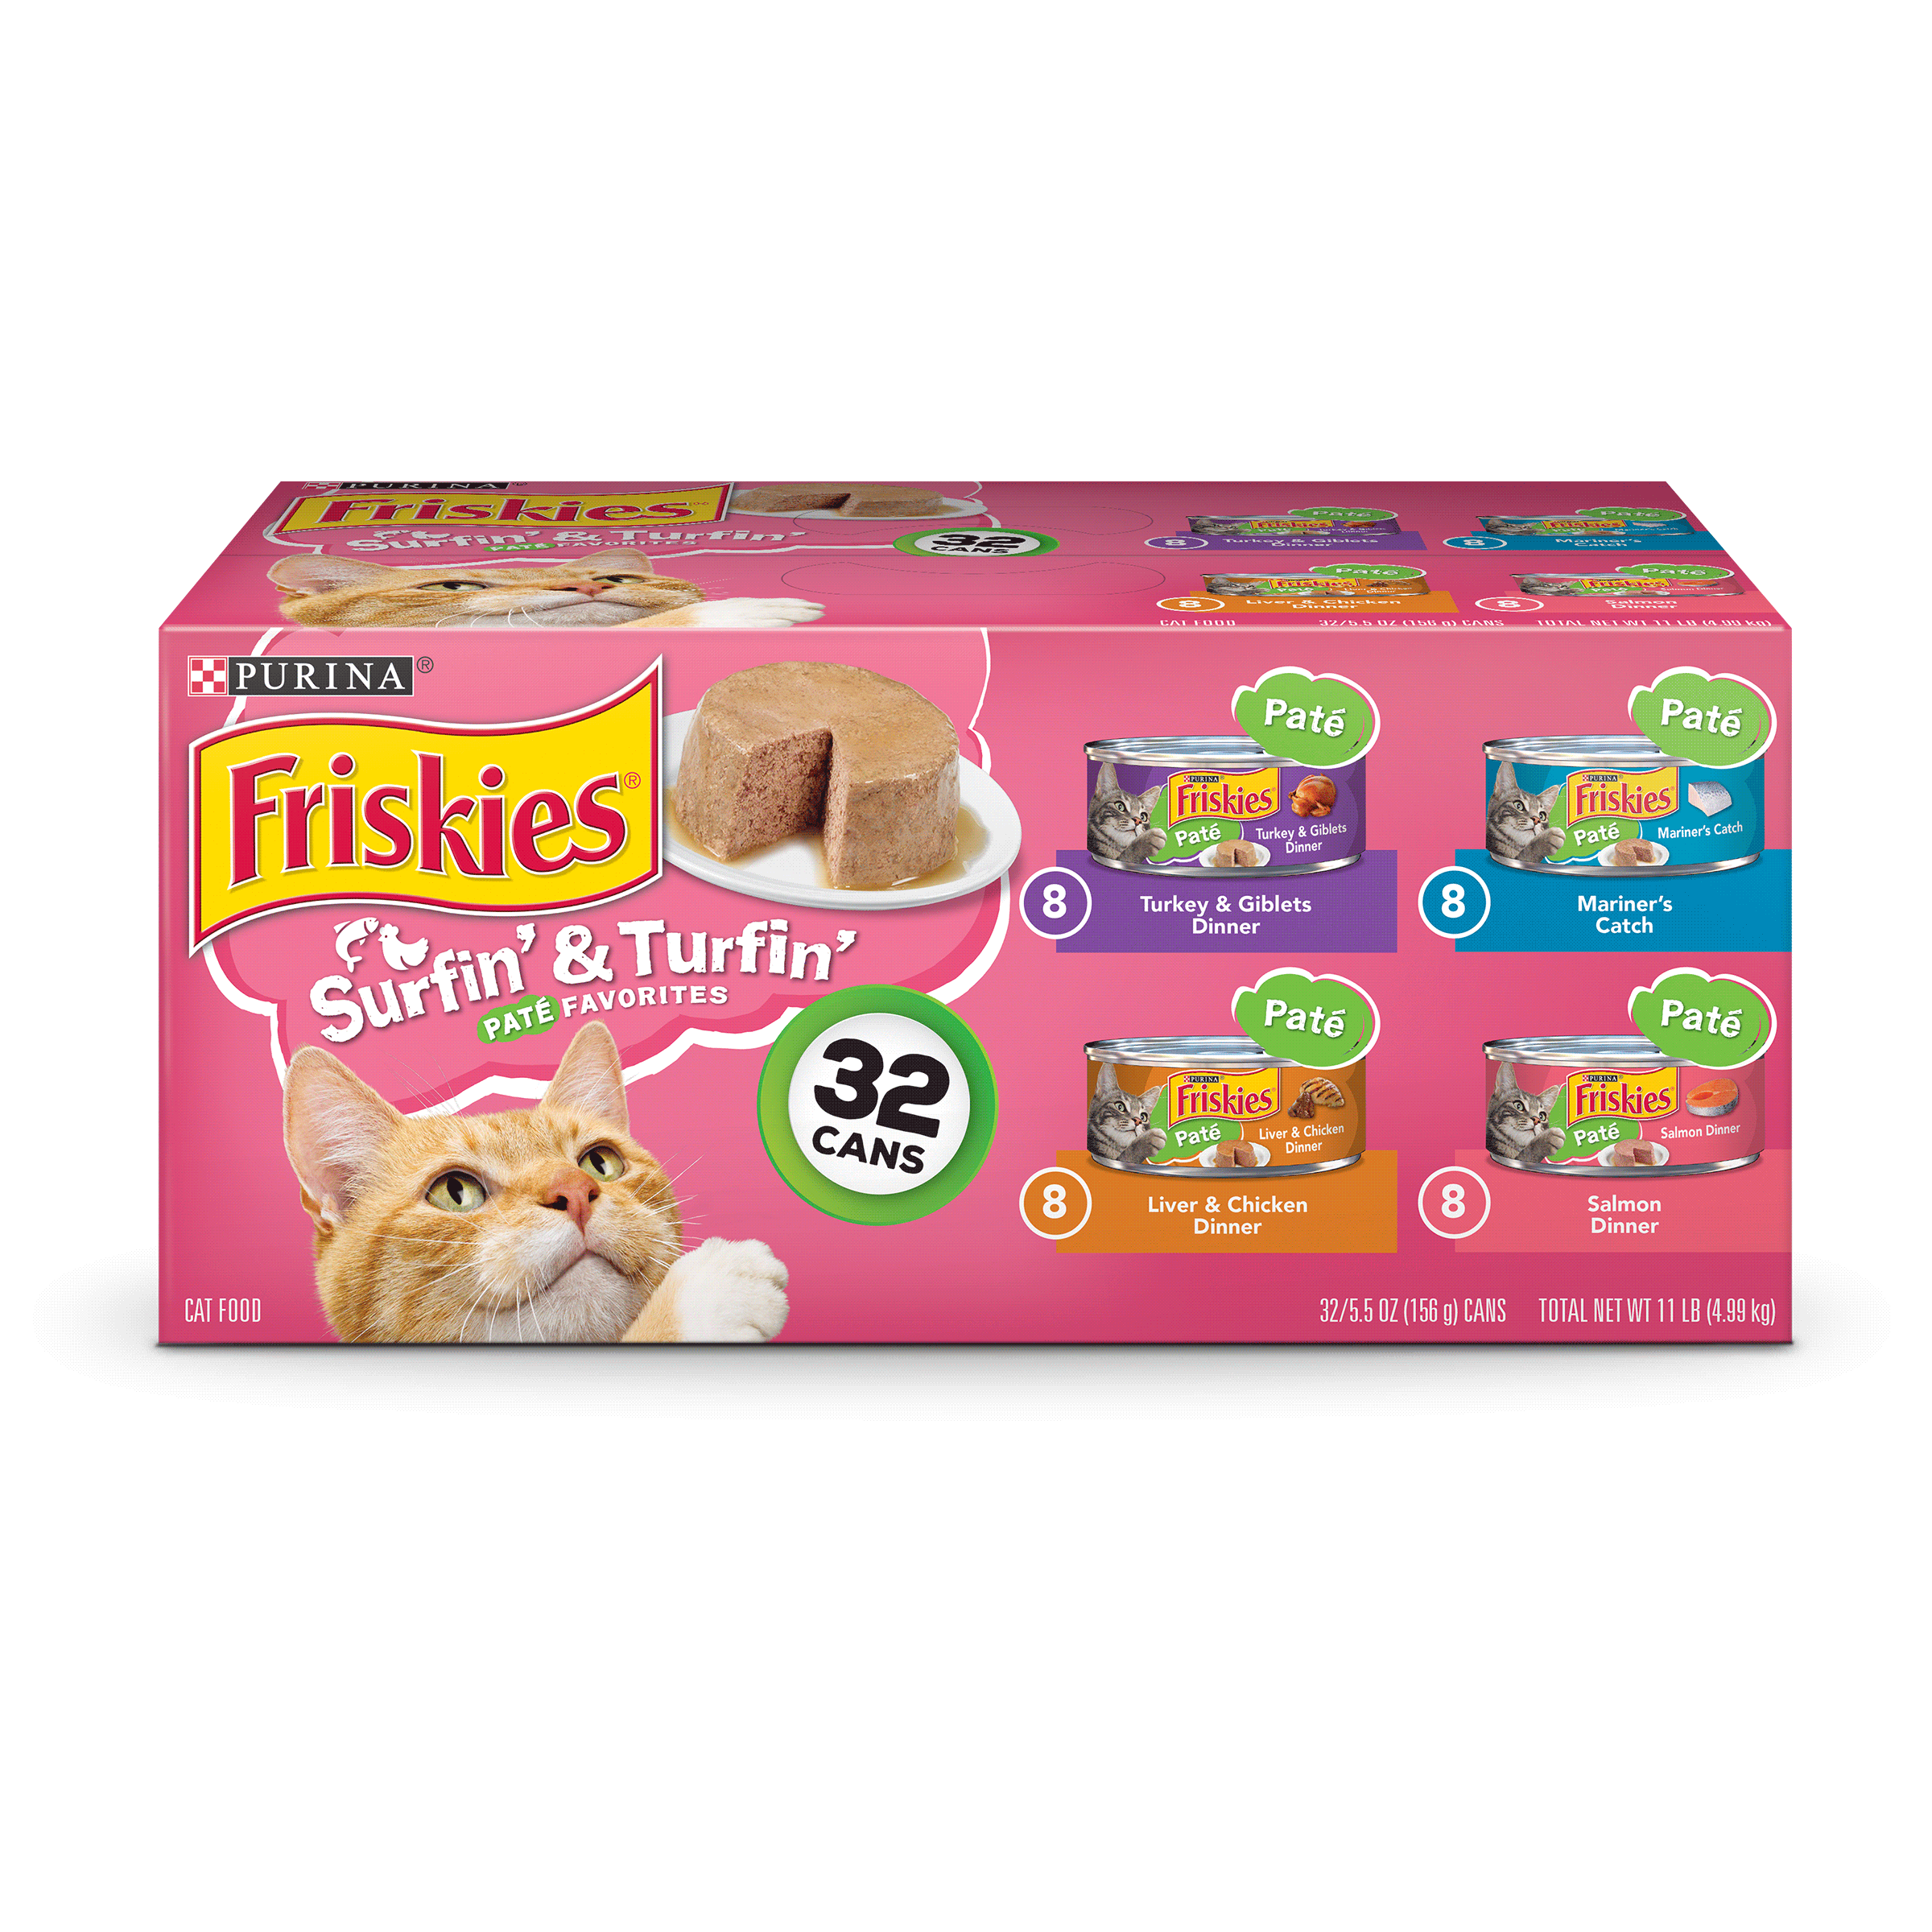 Purina Friskies Pate Surfin' & Turfin' Favorites Adult Wet Cat Food Variety Pack - (32) 5.5 oz. Cans